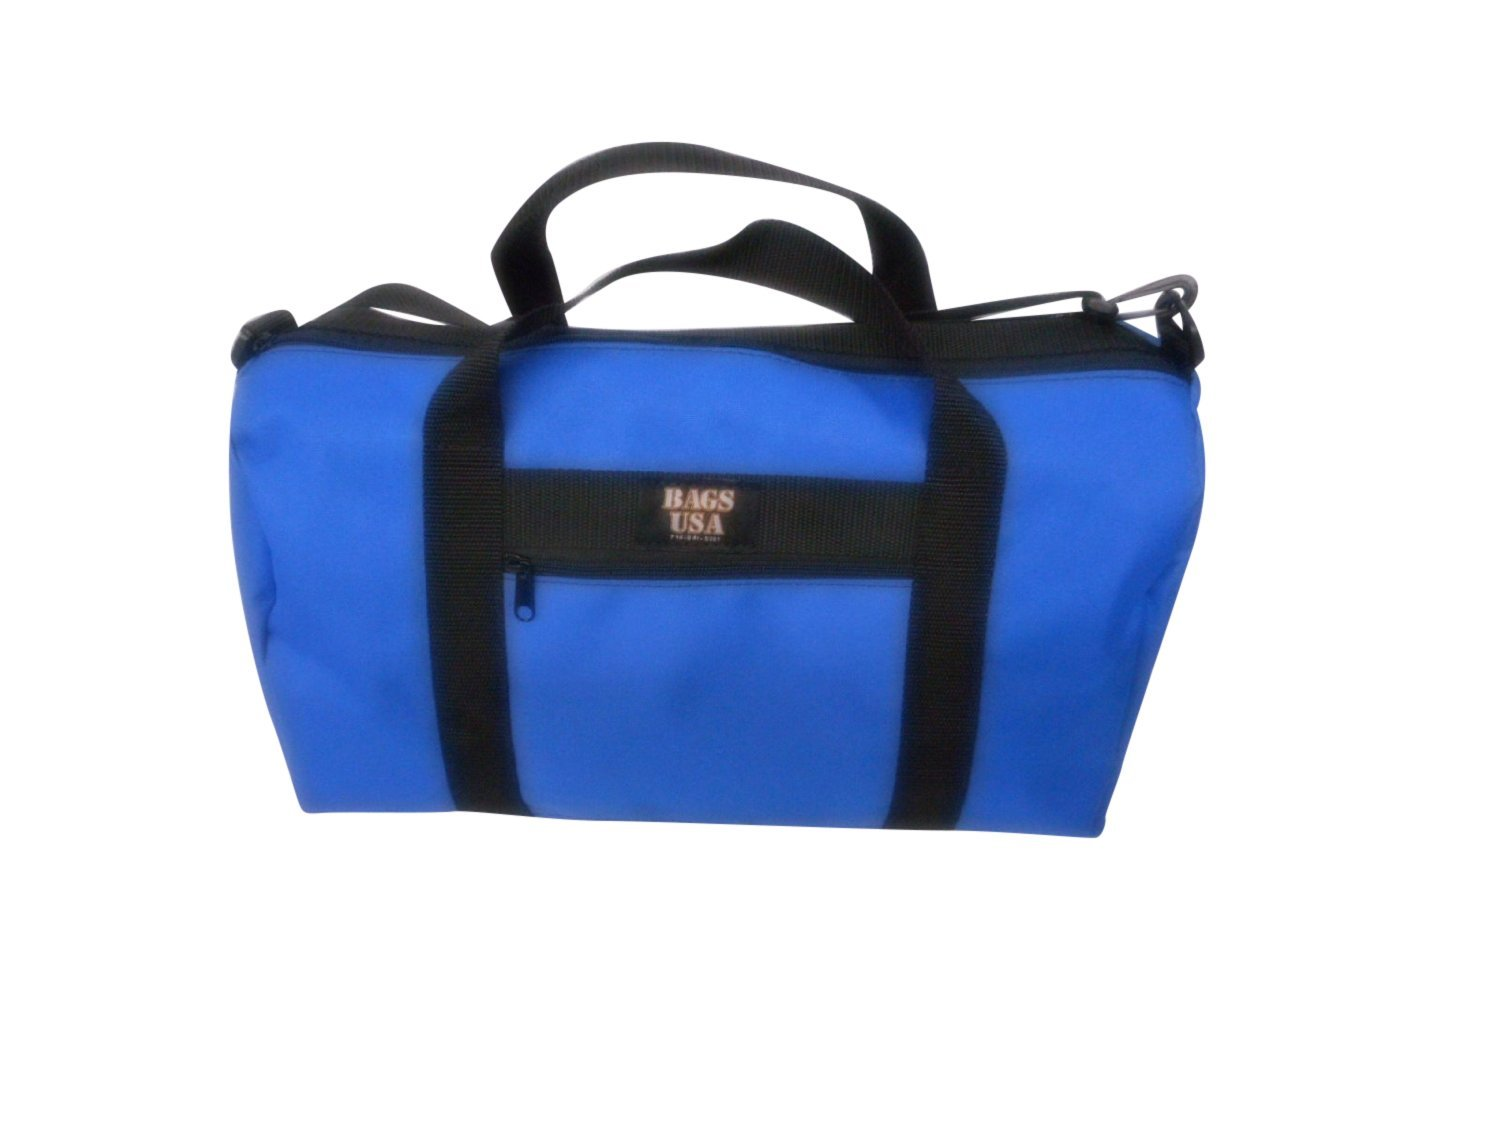 Get Quotations · Wet and Dry Bag Featuring Wet Compartment,swim or Gym Bag  Has Wet Pocket Made 066a3555ad